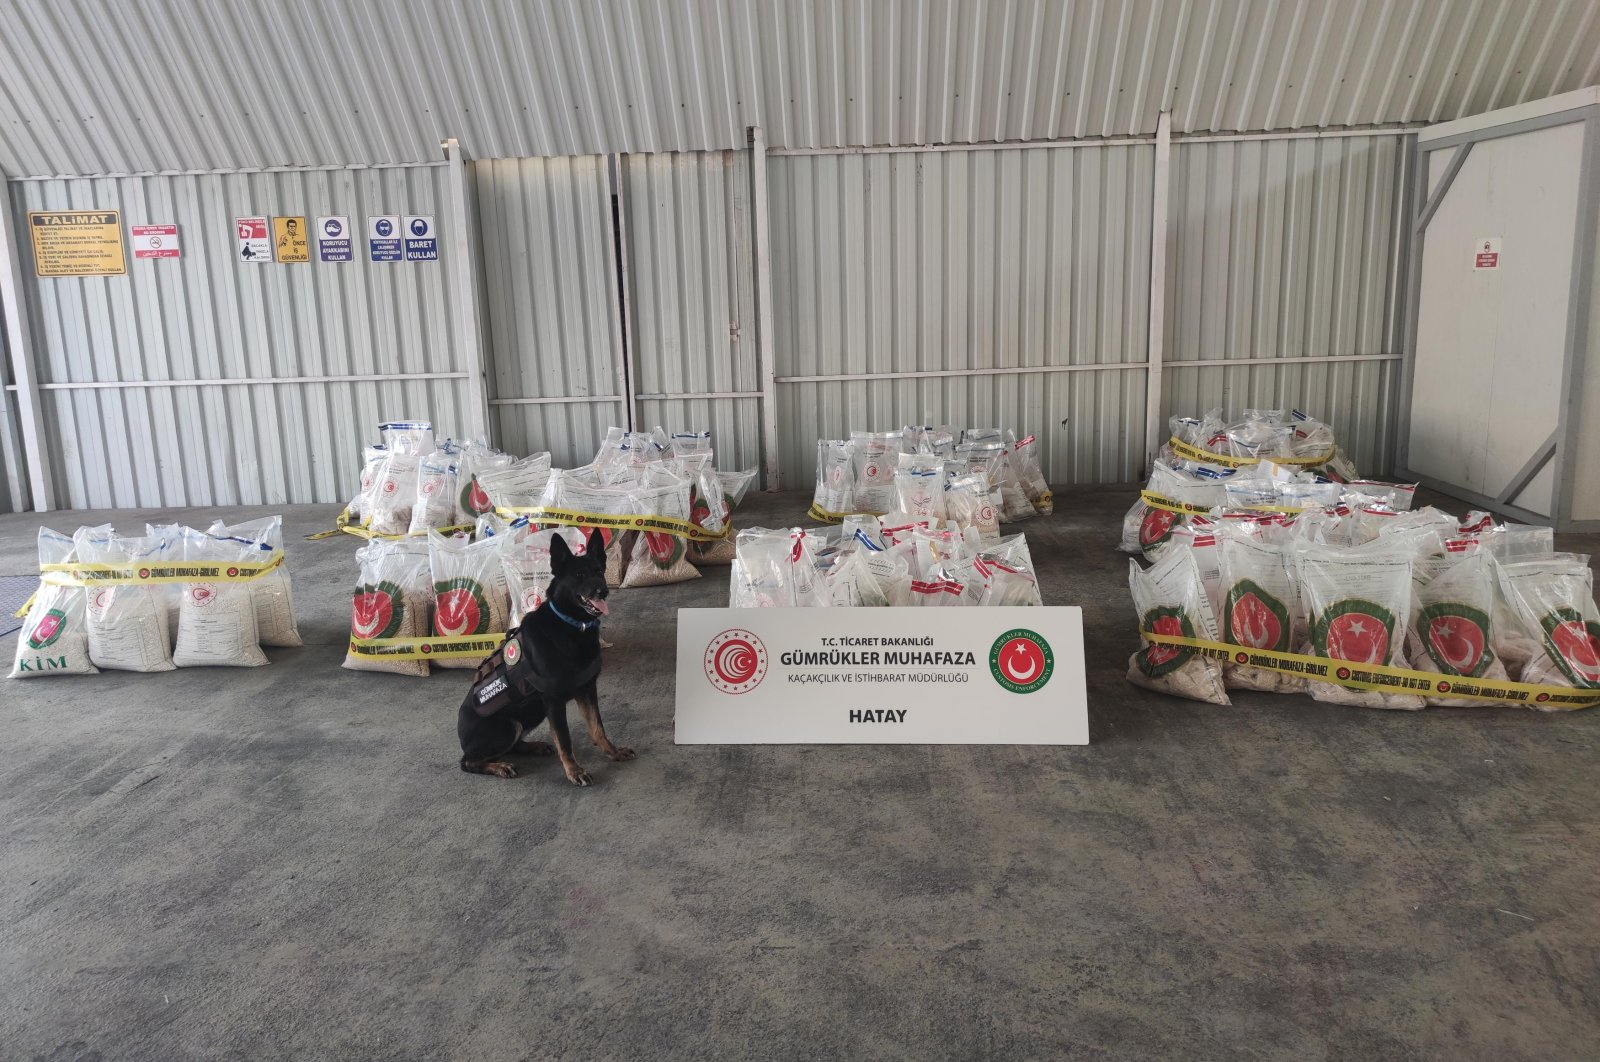 A drug sniffer dog stands near seized Captagon pills, Hatay province, Turkey, May 16, 2021. (DHA PHOTO)